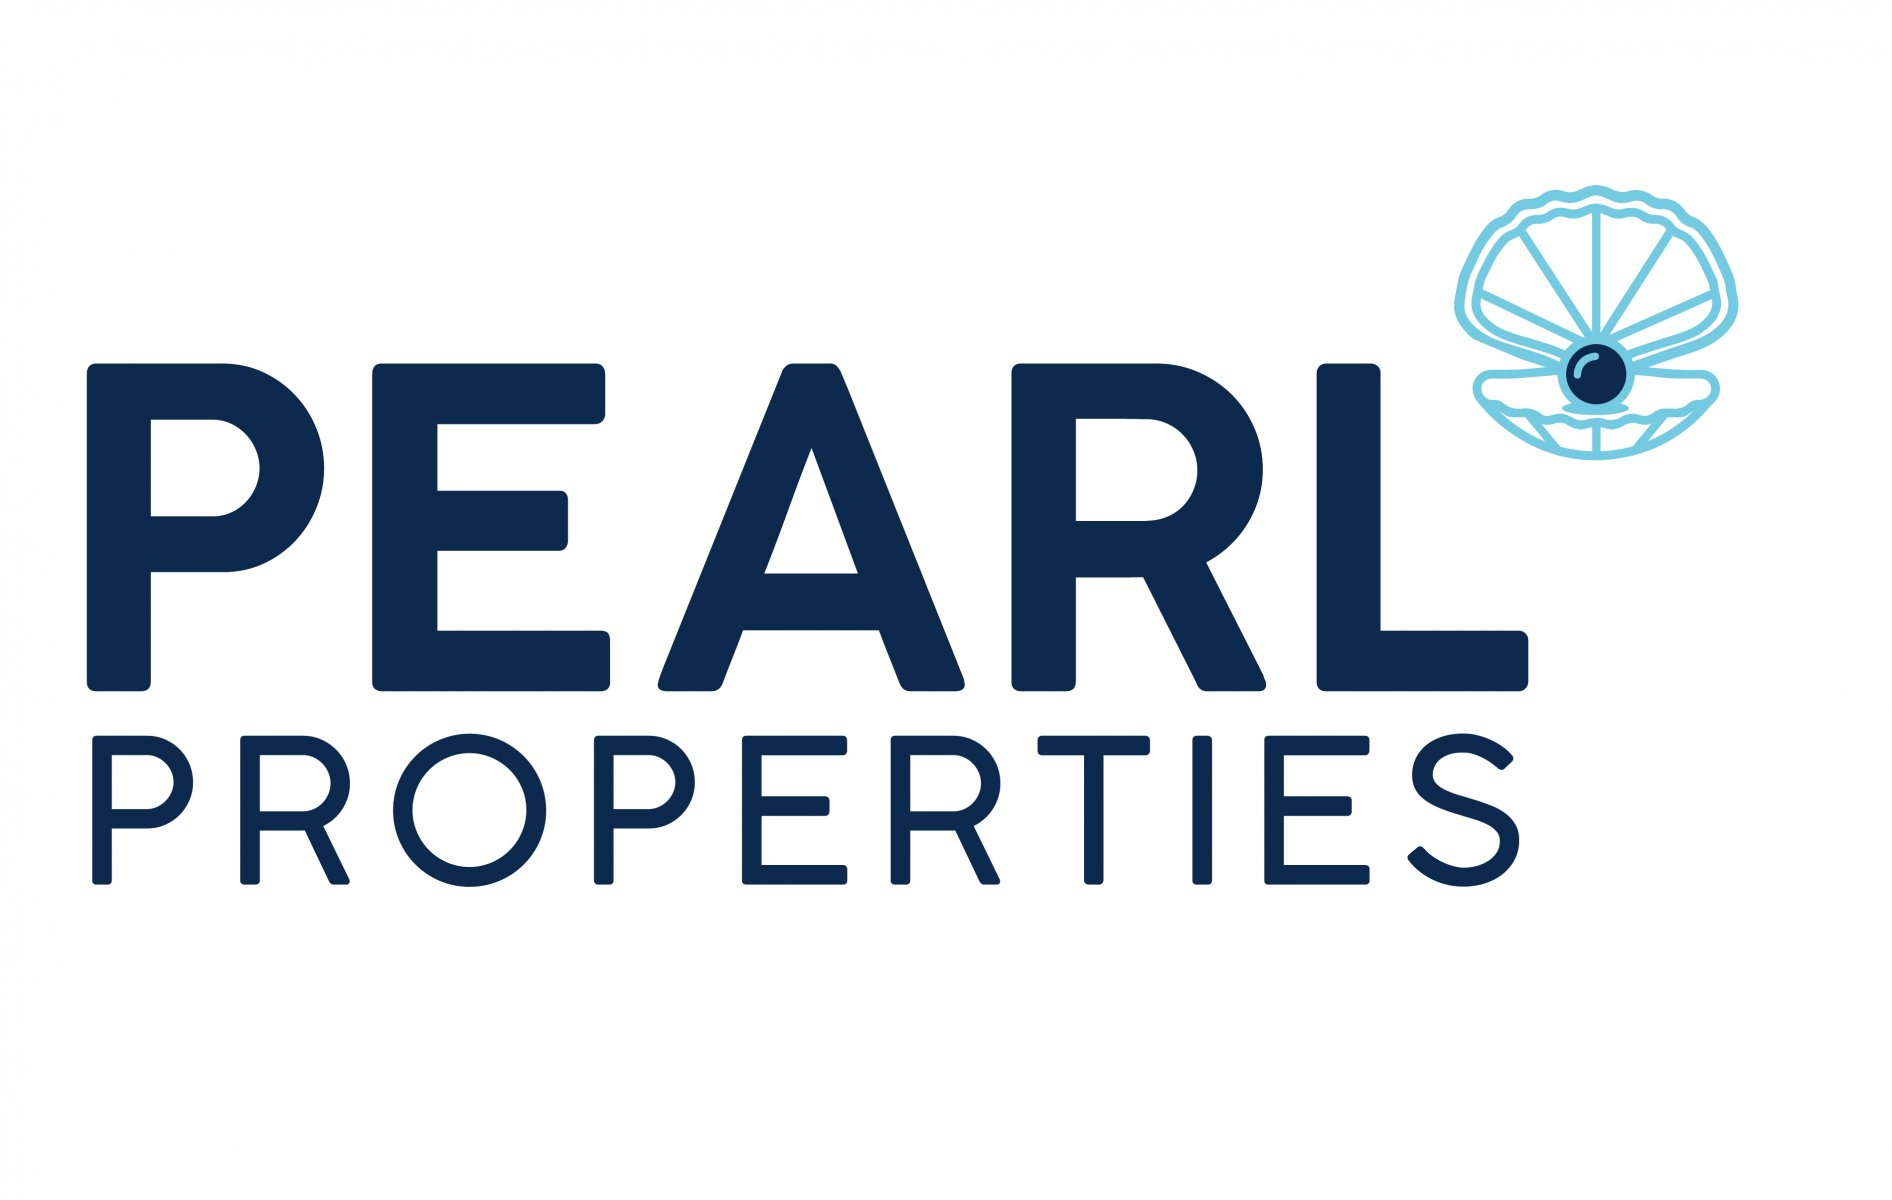 We Buy Properties In South Carolina logo